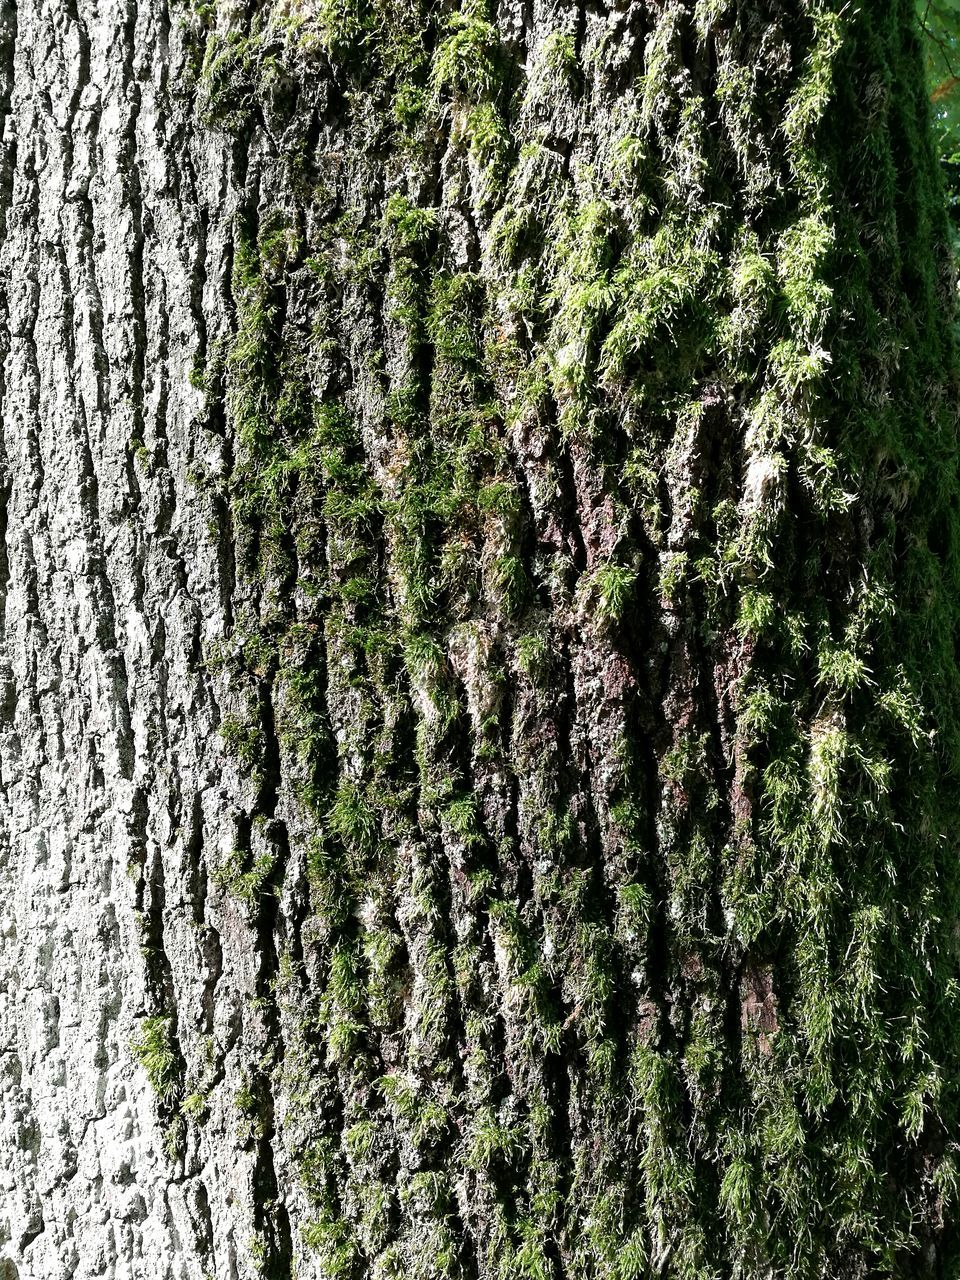 tree trunk, tree, growth, nature, textured, moss, day, no people, green color, close-up, full frame, outdoors, beauty in nature, forest